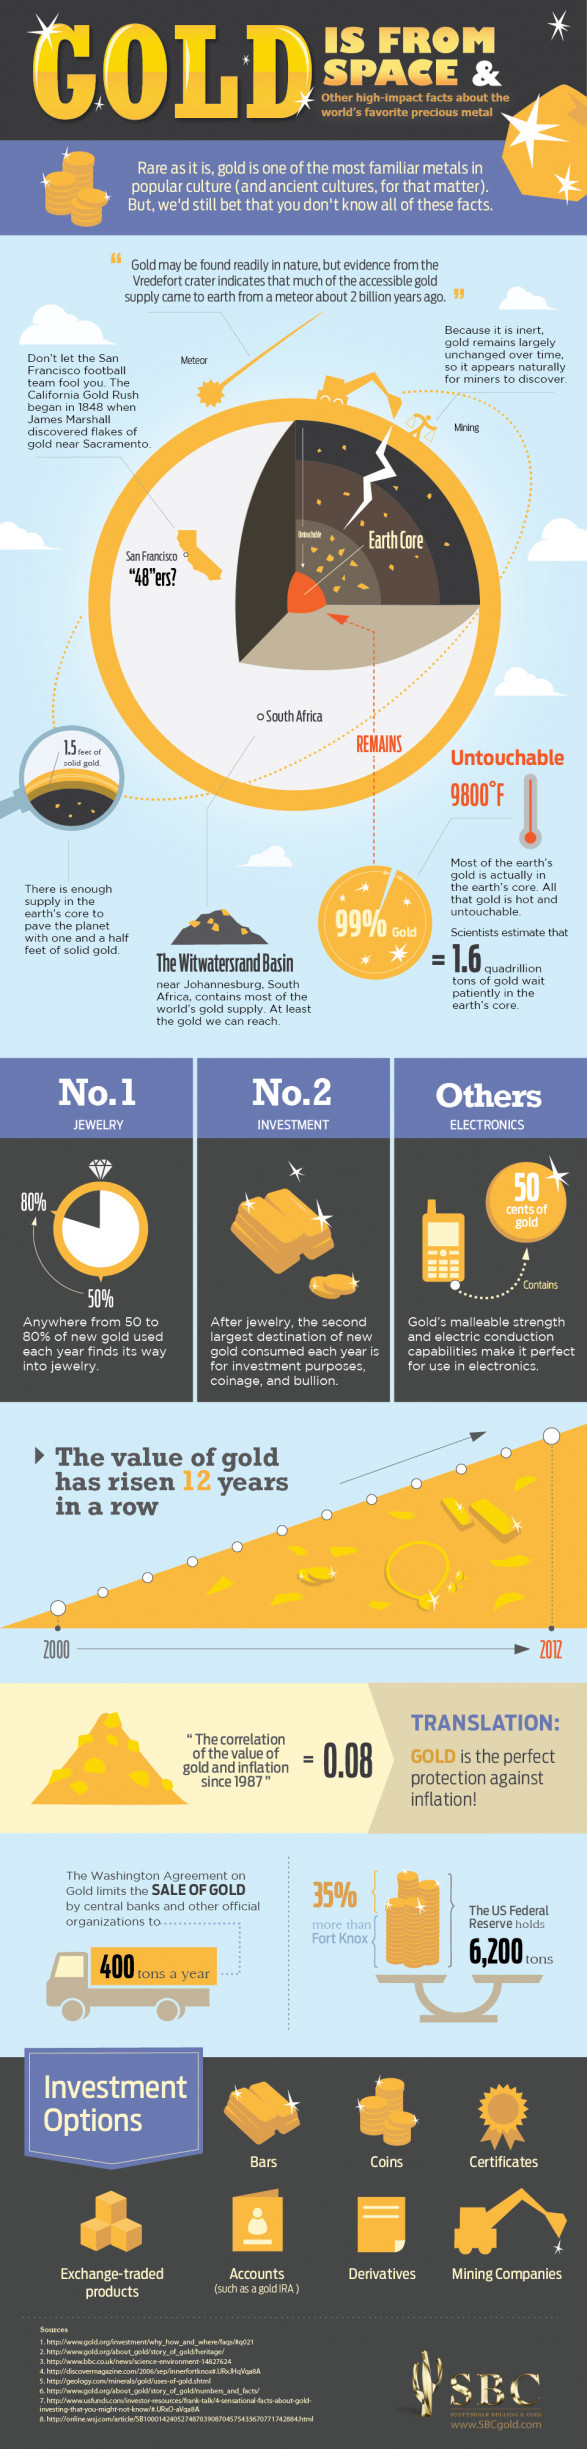 Facts About The Worldâ??s Favorite Precious Metal - Gold